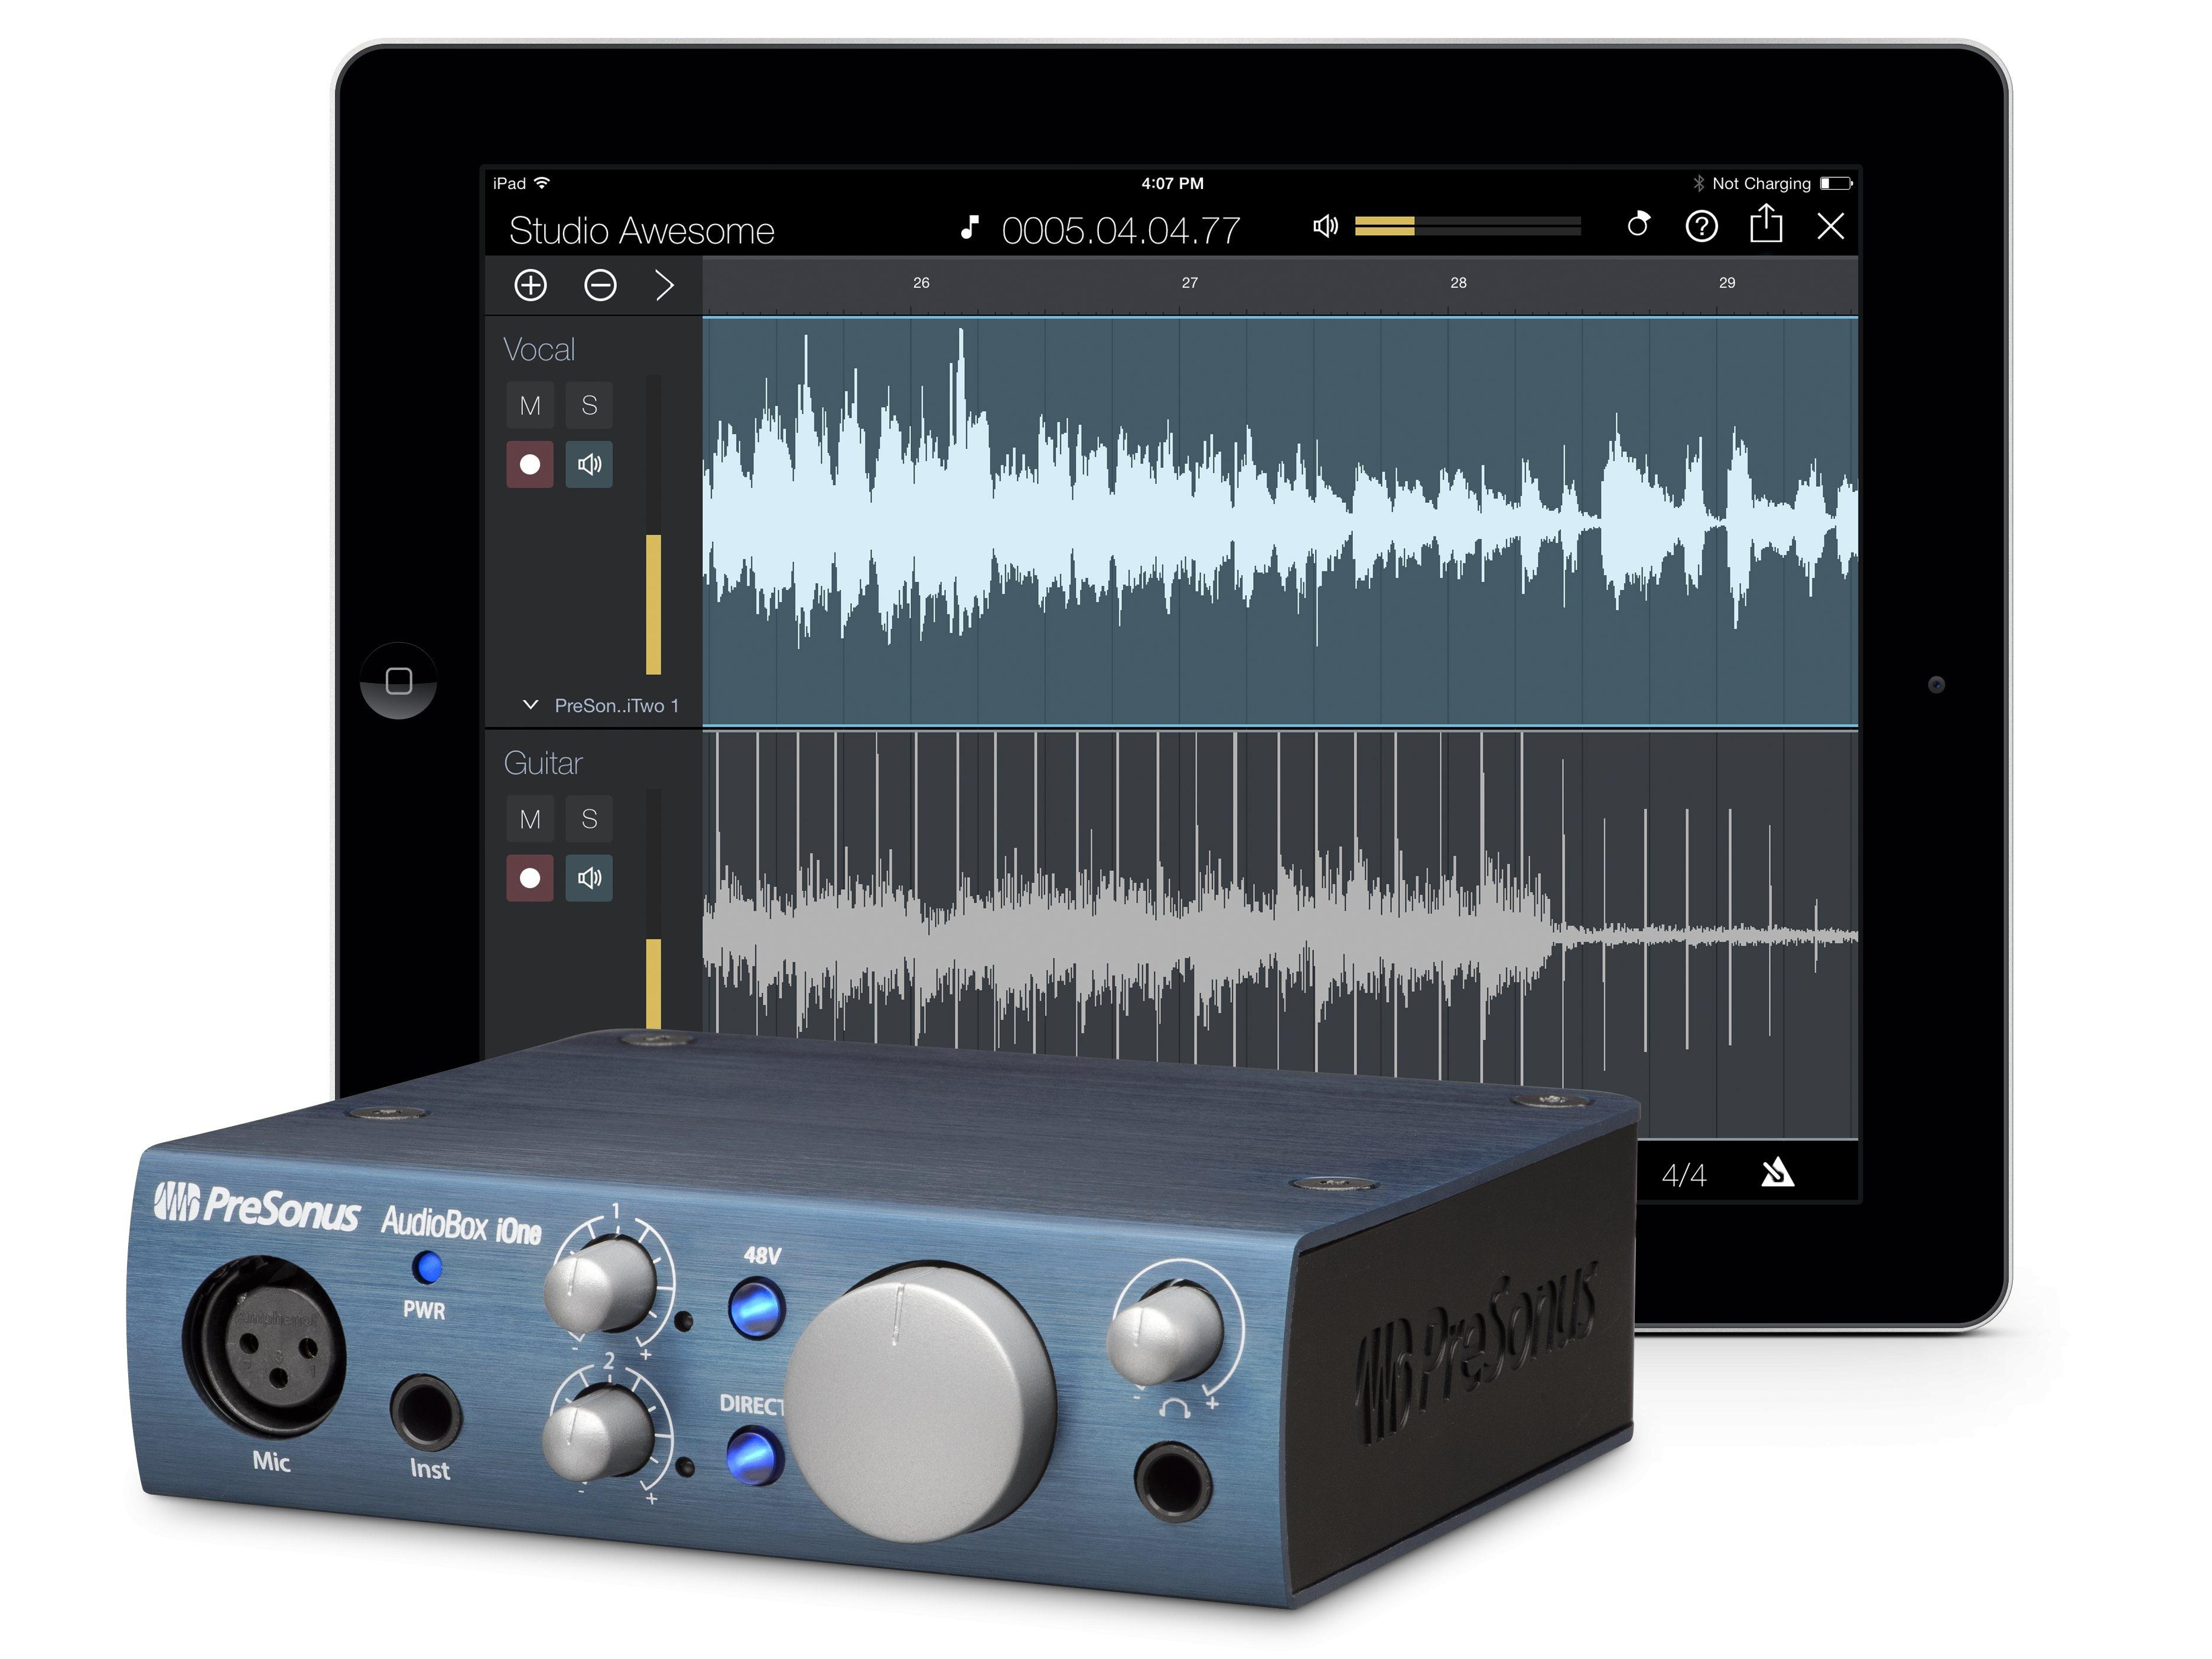 AudioBox iOne 2x2 USB 2.0 Recording System/iPad Audio Interface w 1 Mic Input by PreSonus